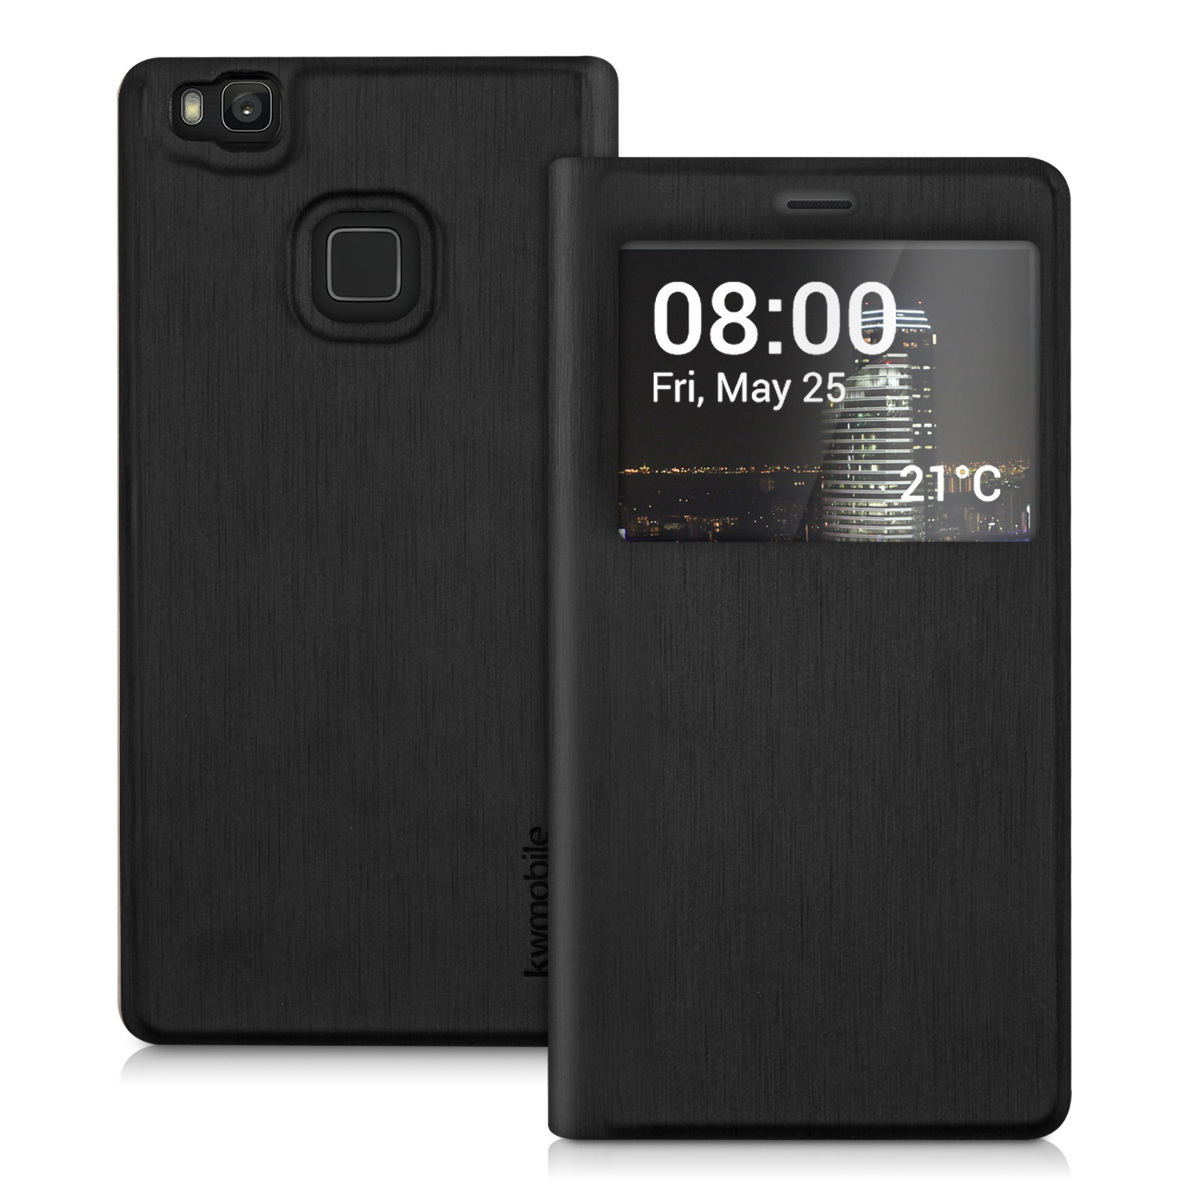 flip cover case f r huawei p9 lite handy h lle tasche slim. Black Bedroom Furniture Sets. Home Design Ideas